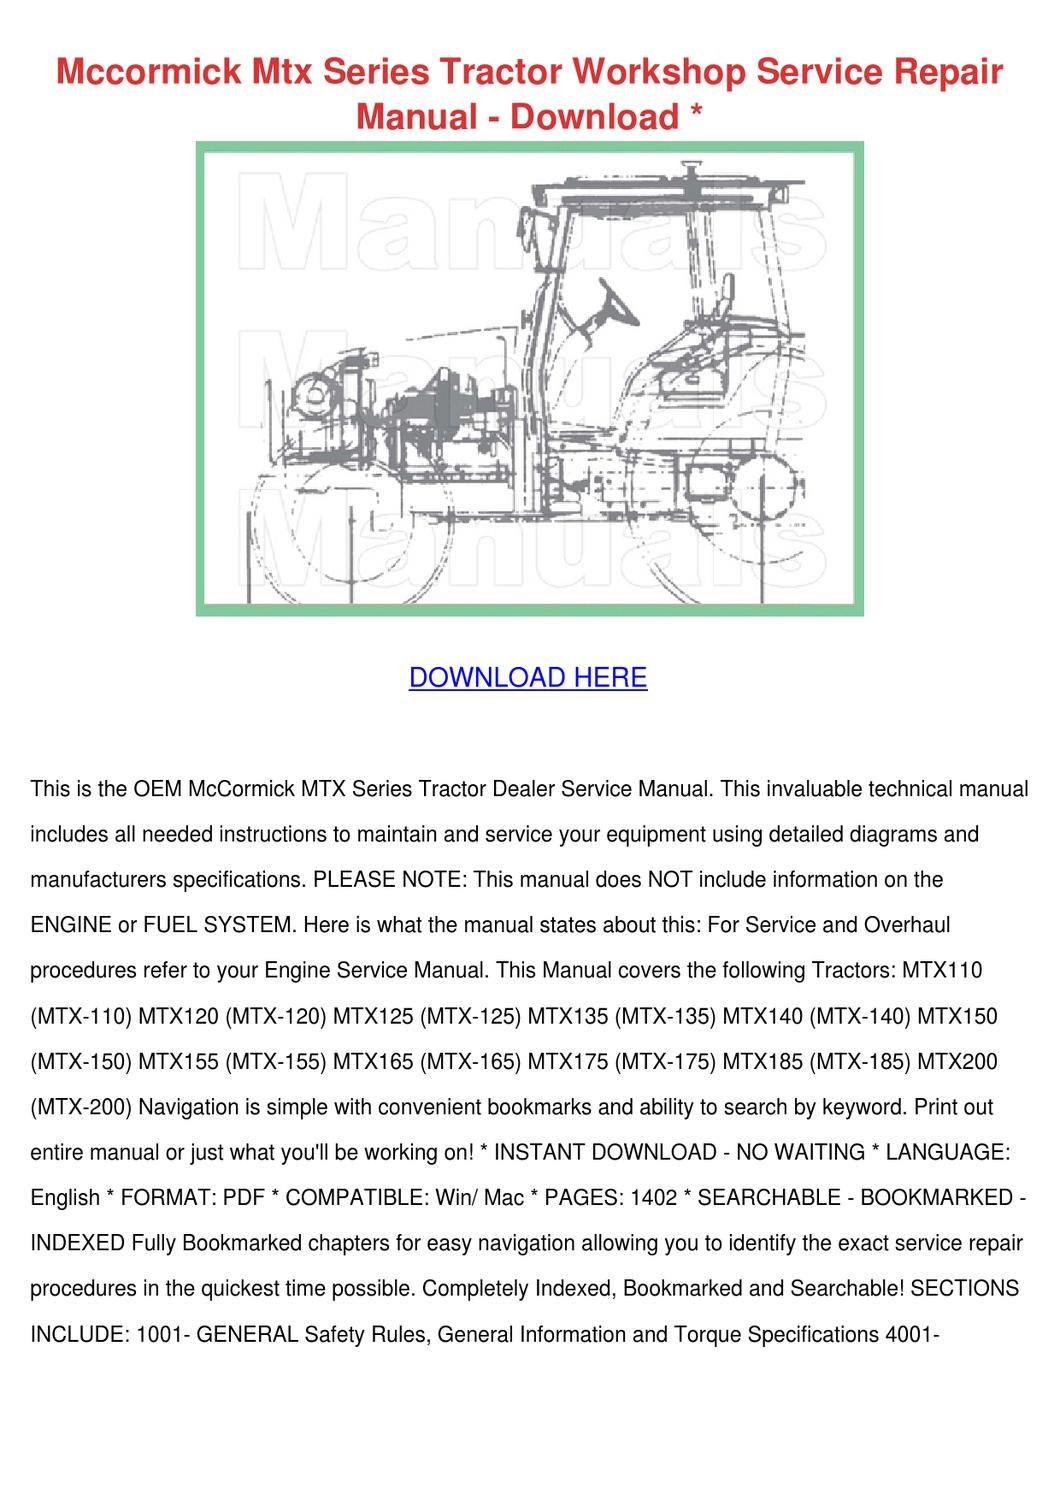 hight resolution of mccormick mtx series tractor workshop service by adrianne walbright issuu